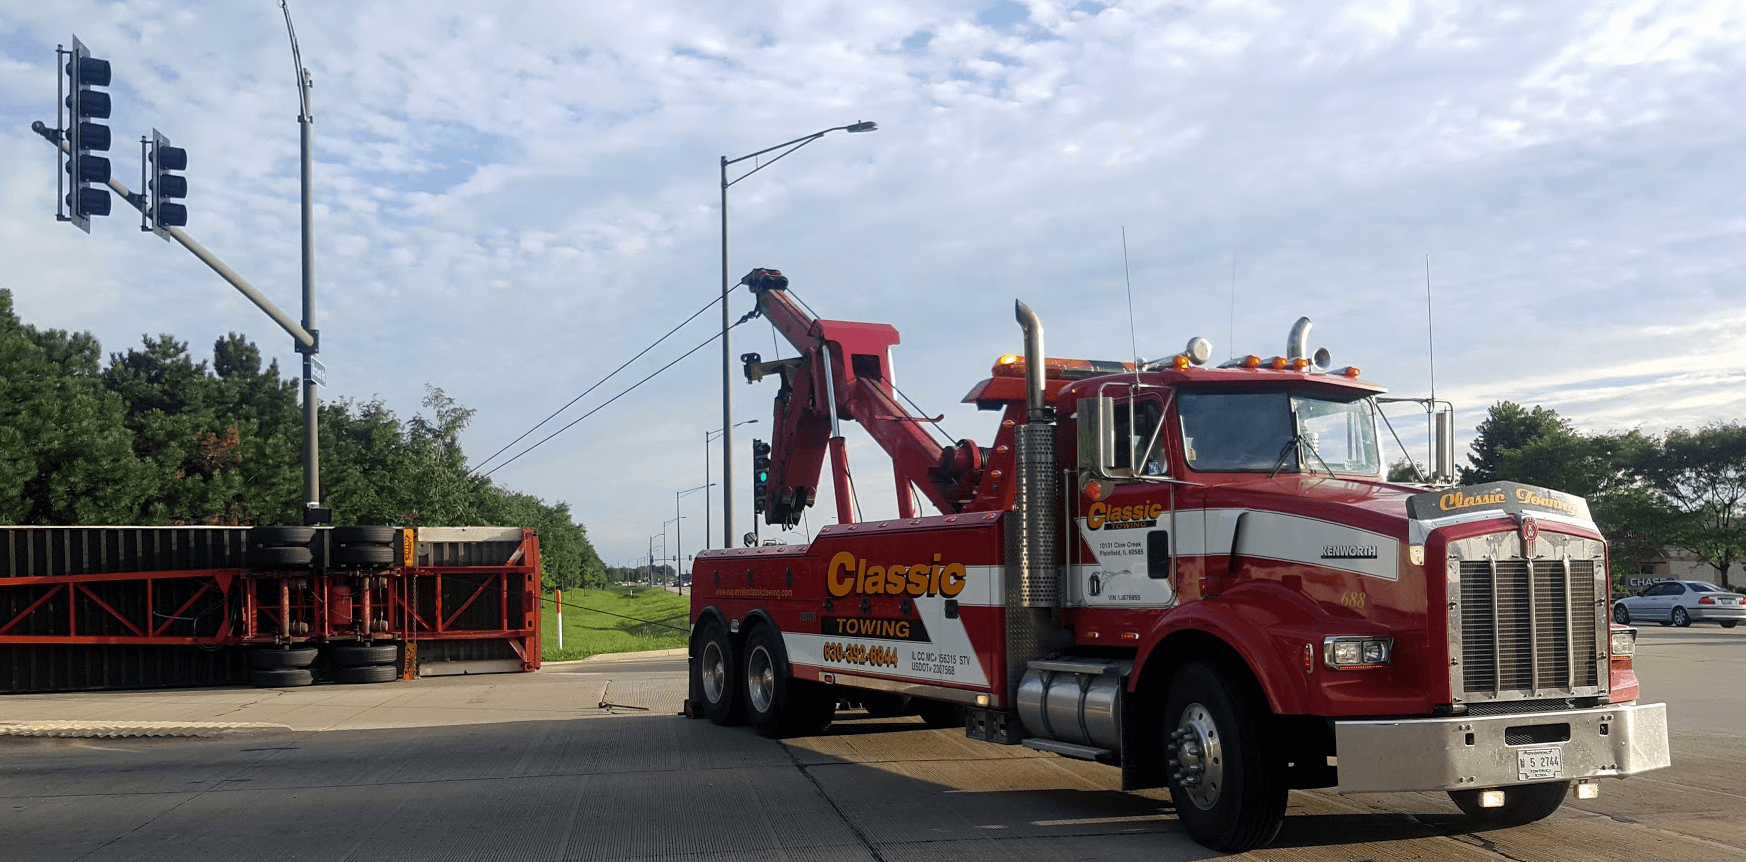 Heavy Duty Towing Service in Illinois, Naperville Towing